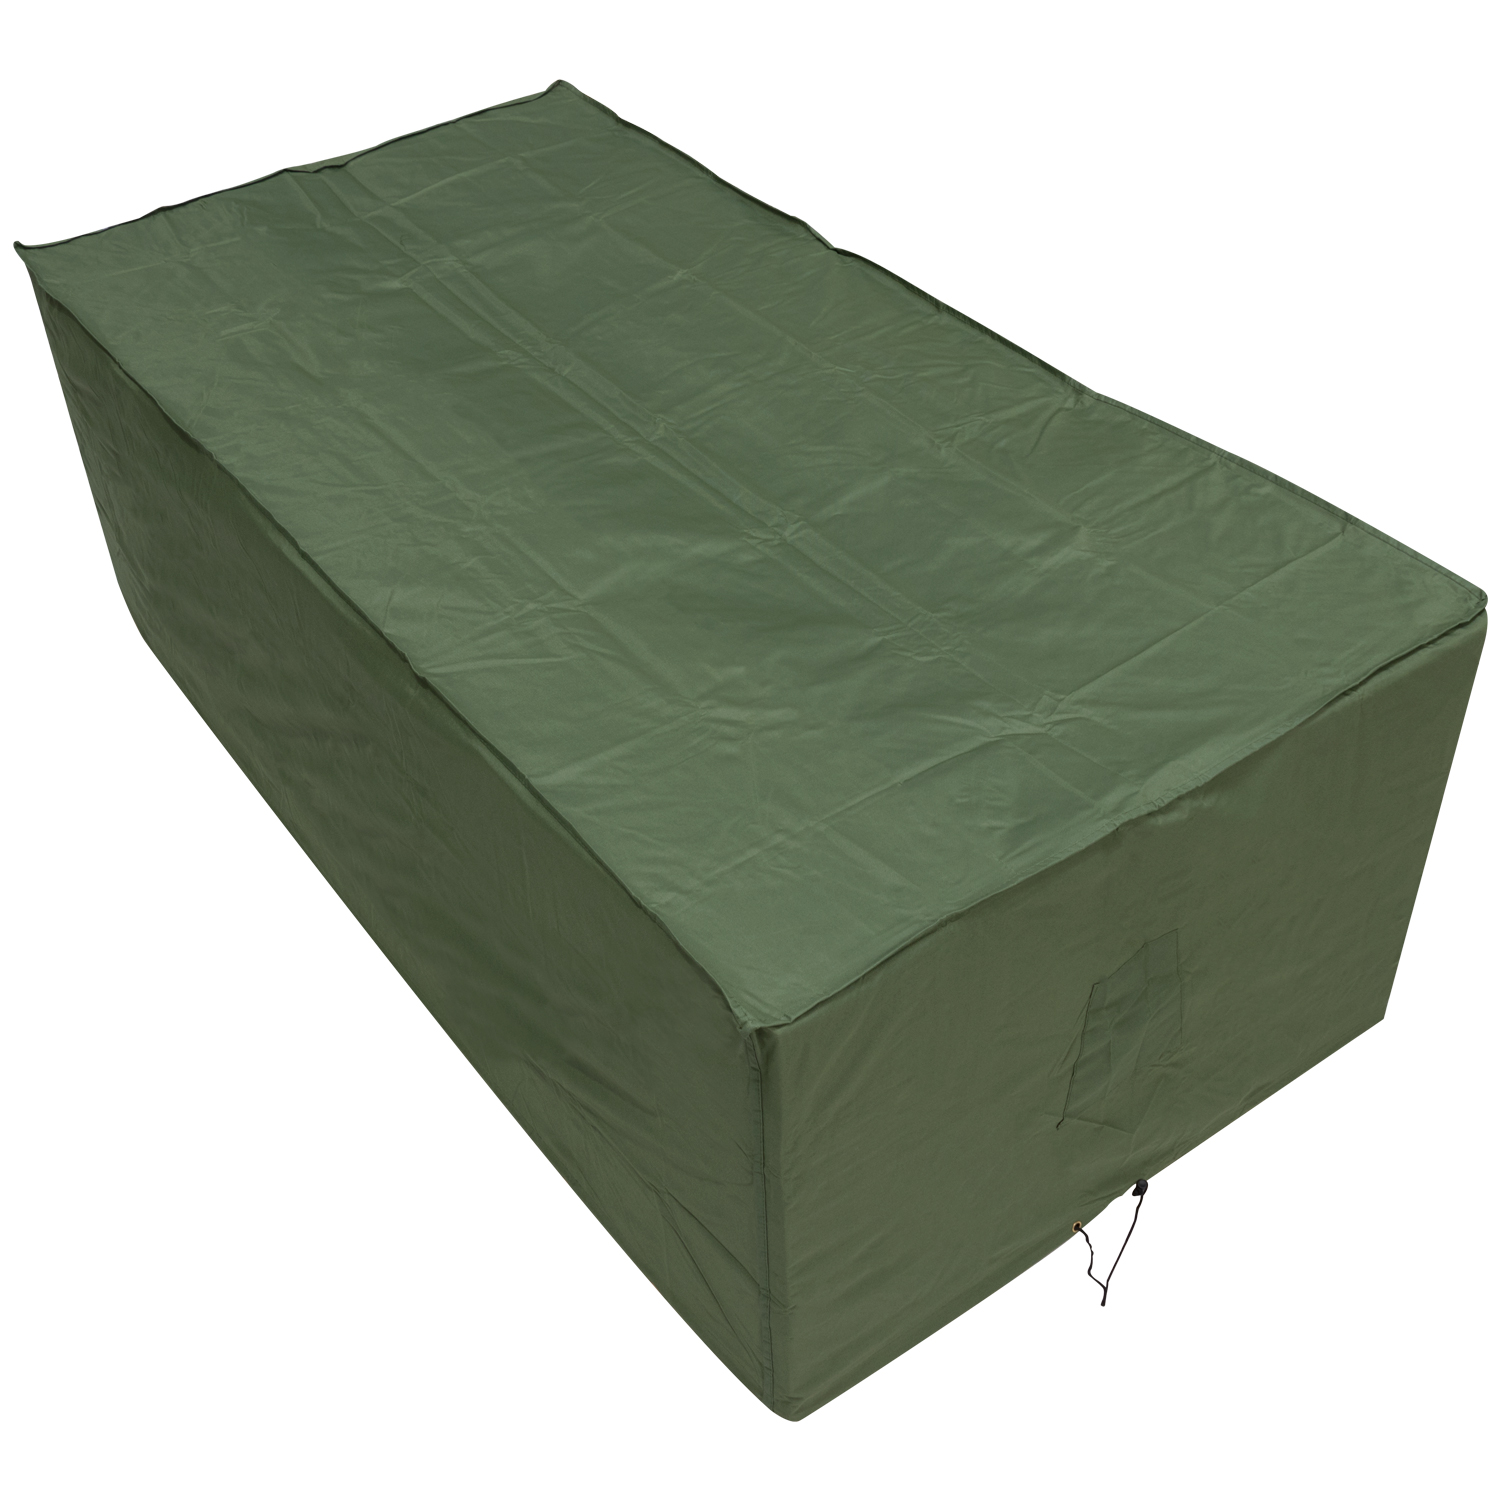 oxbridge large table cover green covers outdoor value. Black Bedroom Furniture Sets. Home Design Ideas